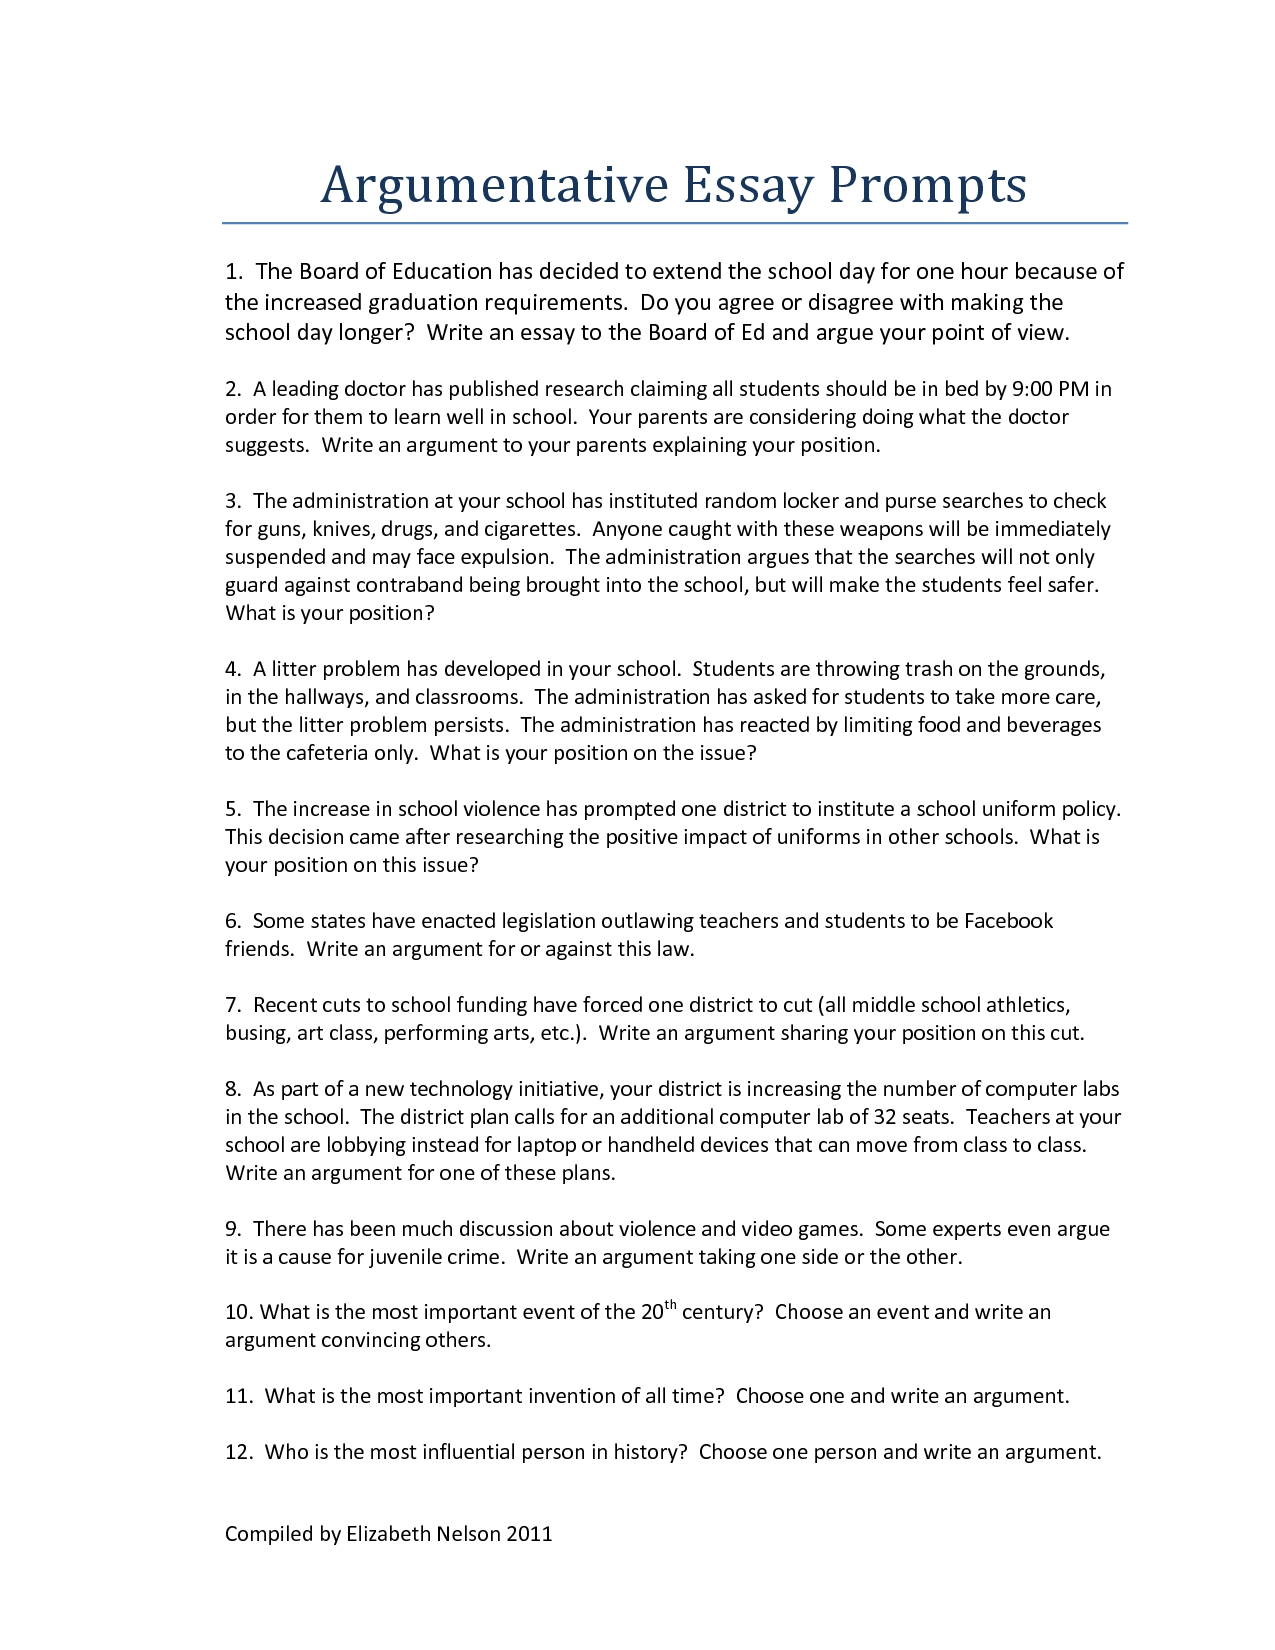 001 Argumentative Essay Topics Education Example For Middle School Writings And Essays Should Physical Mandatory In Schools Good Persuasive High Argument Unique On Higher Early Childhood Full